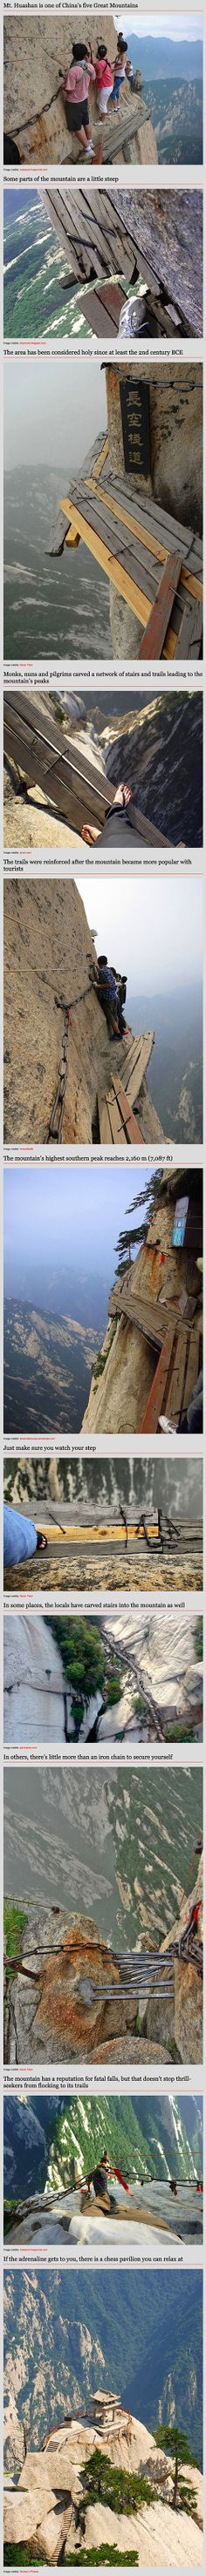 As wonderful as Chinese tea is, it is definitely not something you'd closely associate with exhilaration, adrenaline and the fear of death. Mt. Huashan in China, however, manages to bring all of these things together by featuring a death-defying cliff-side mountain climb that brings daring visitors to a tea house 2,160 m (7,087 ft) up on the mountain's southern peak.